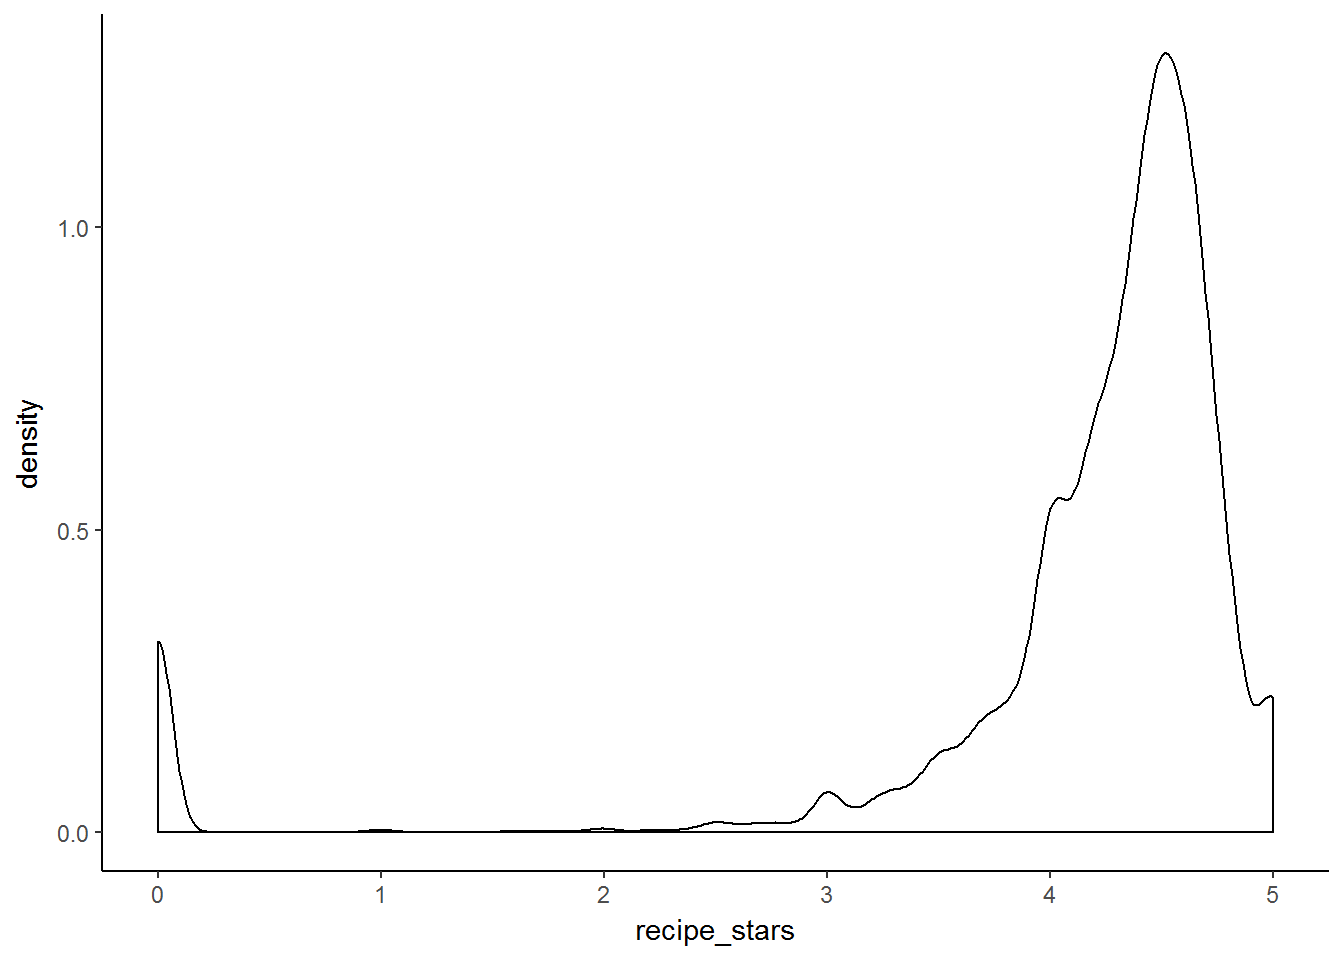 Density plot of number of stars a recipe is rated